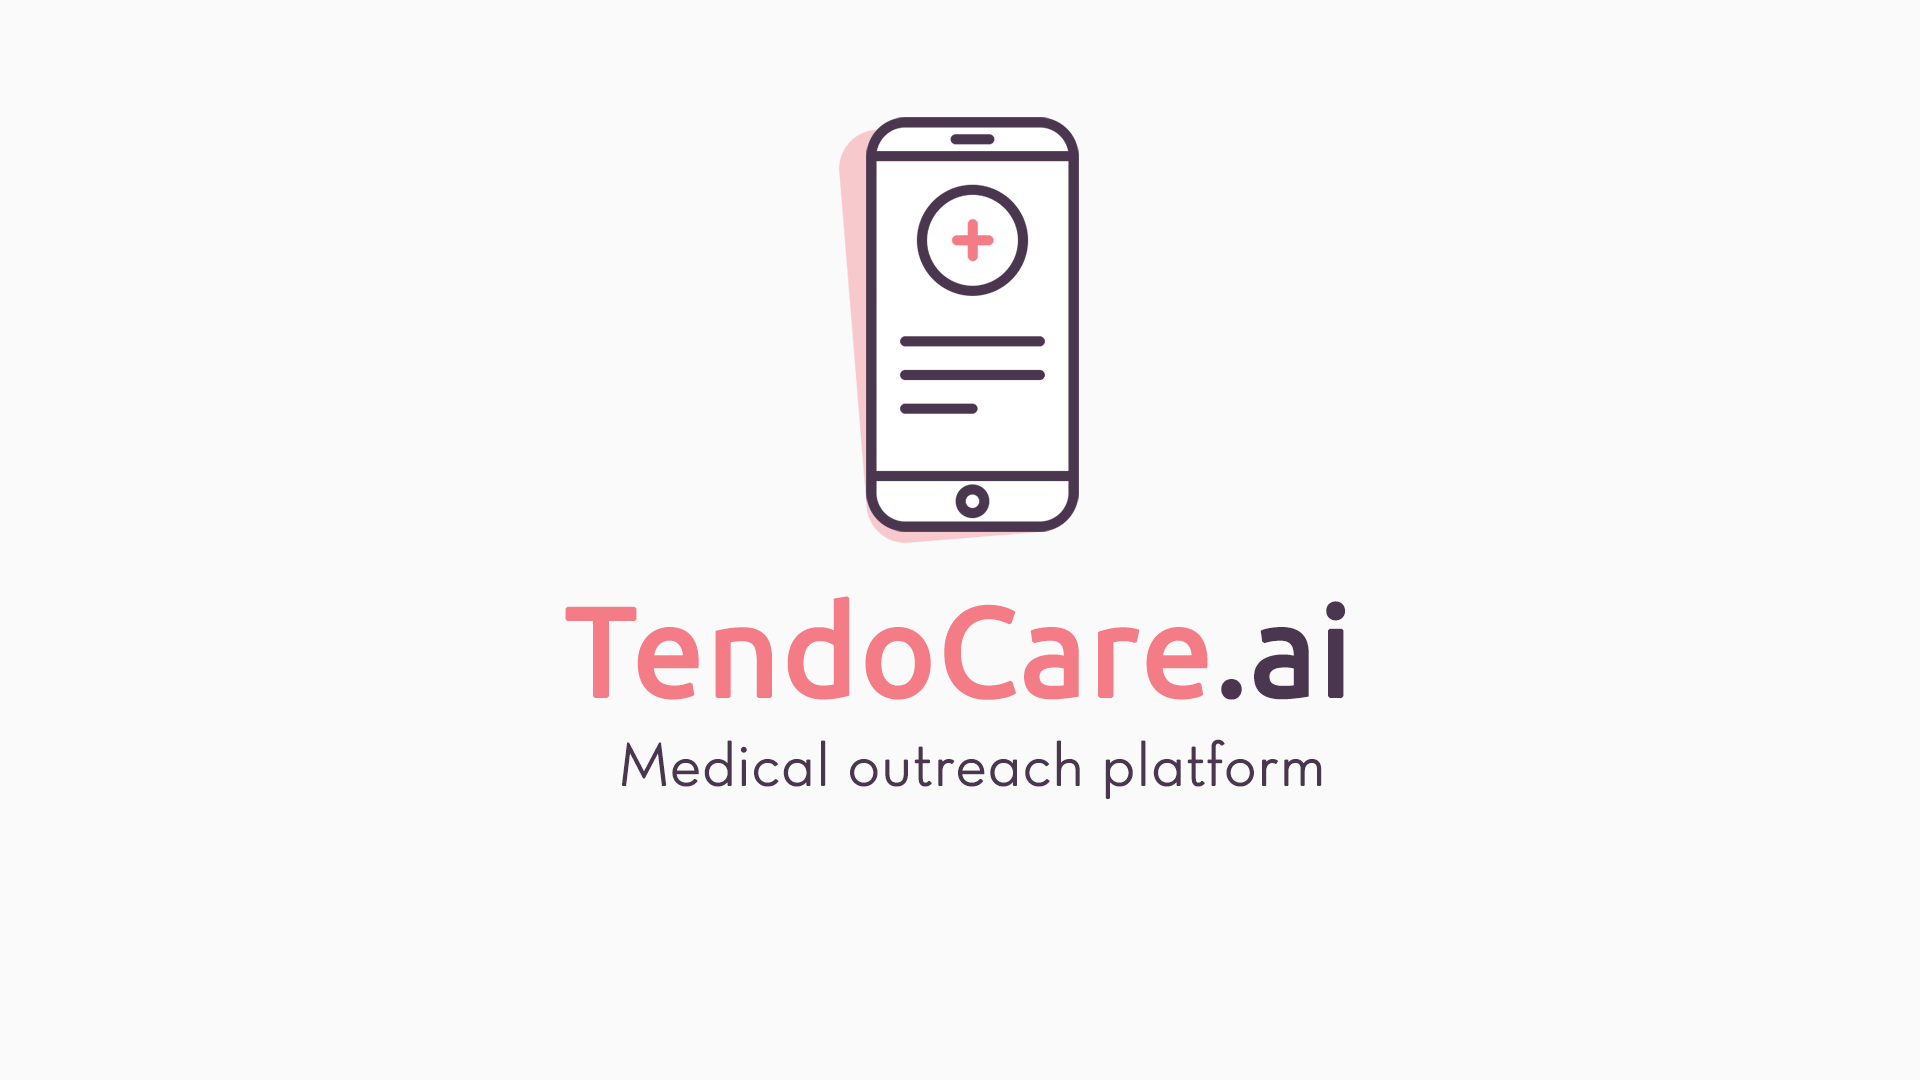 Introducing TendoCare.ai